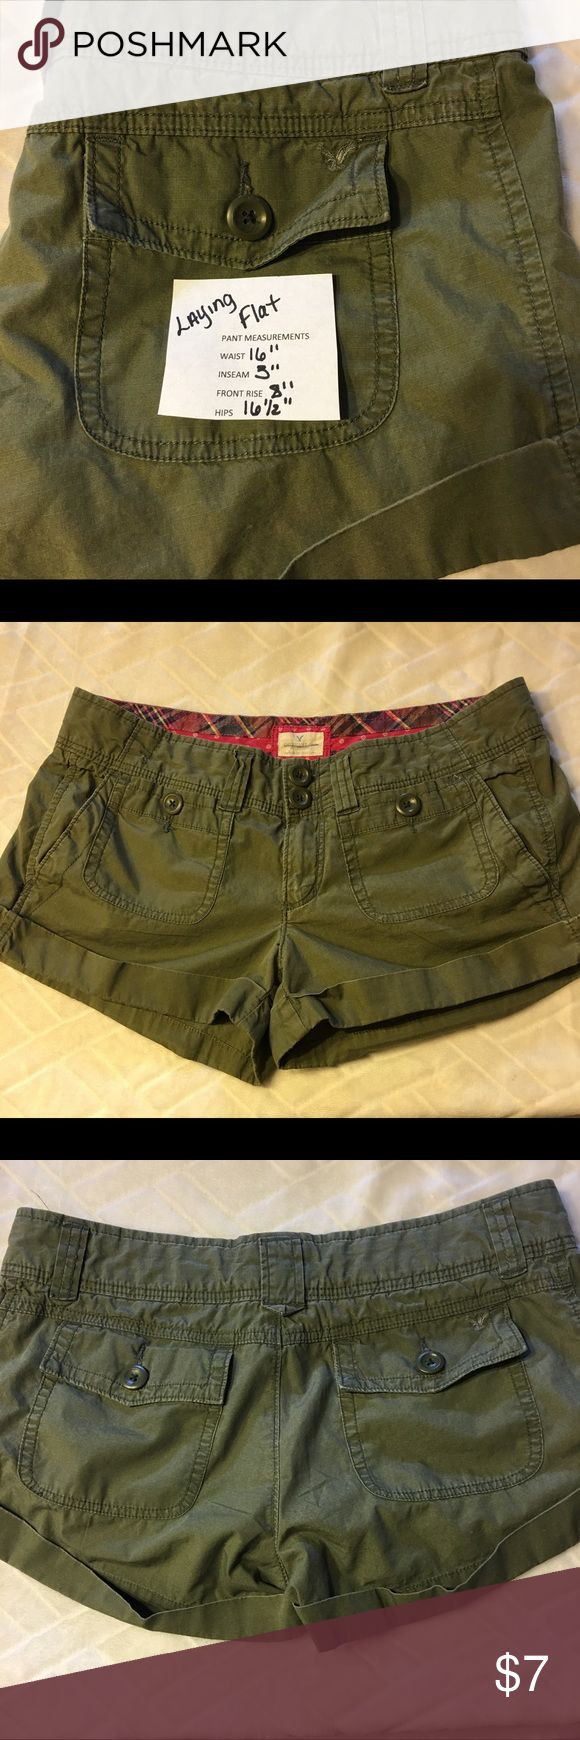 JUST IN ❤️EUC AEO GREEN SHORTS EUC AEO army green shorts, size 8. All measurements in photos. American Eagle Outfitters Shorts